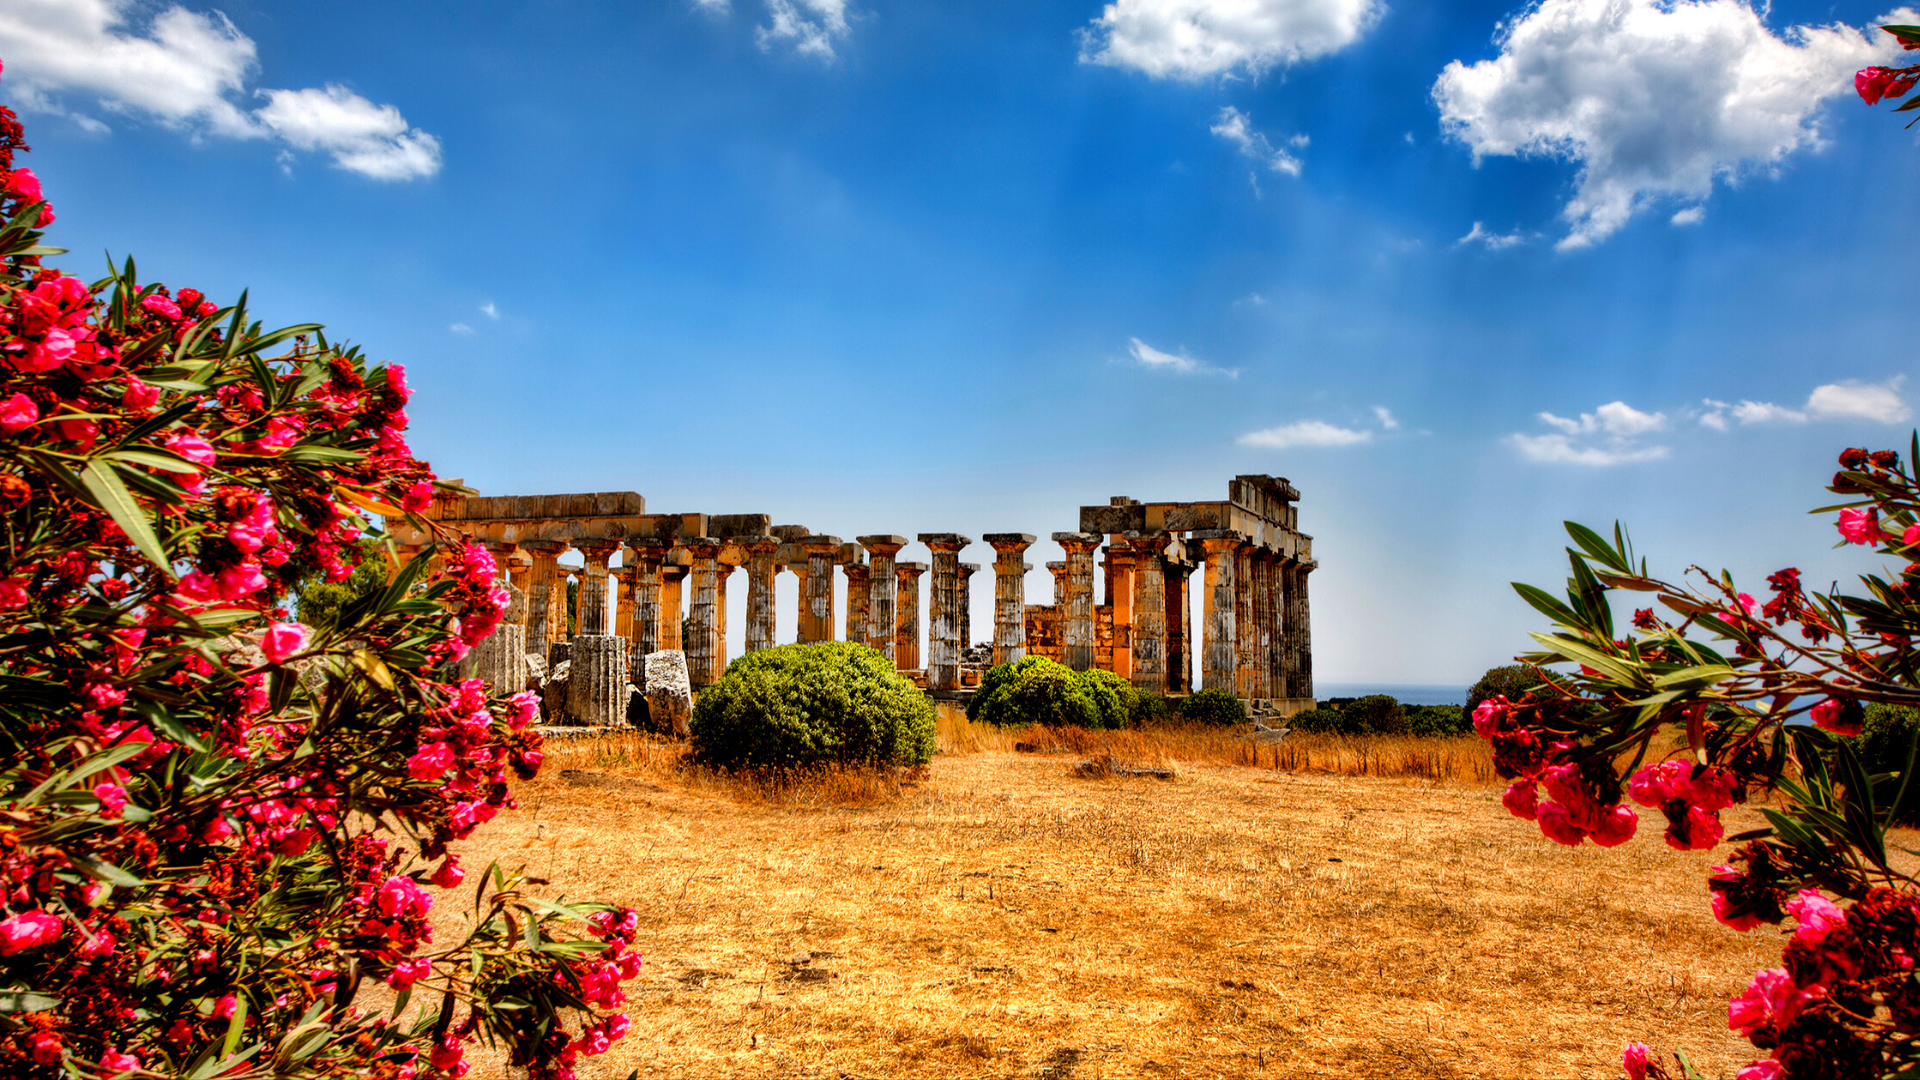 Chauffeur driven tours for Palermo and the Sicily. Travel to Sicily in a luxury chauffeur car.